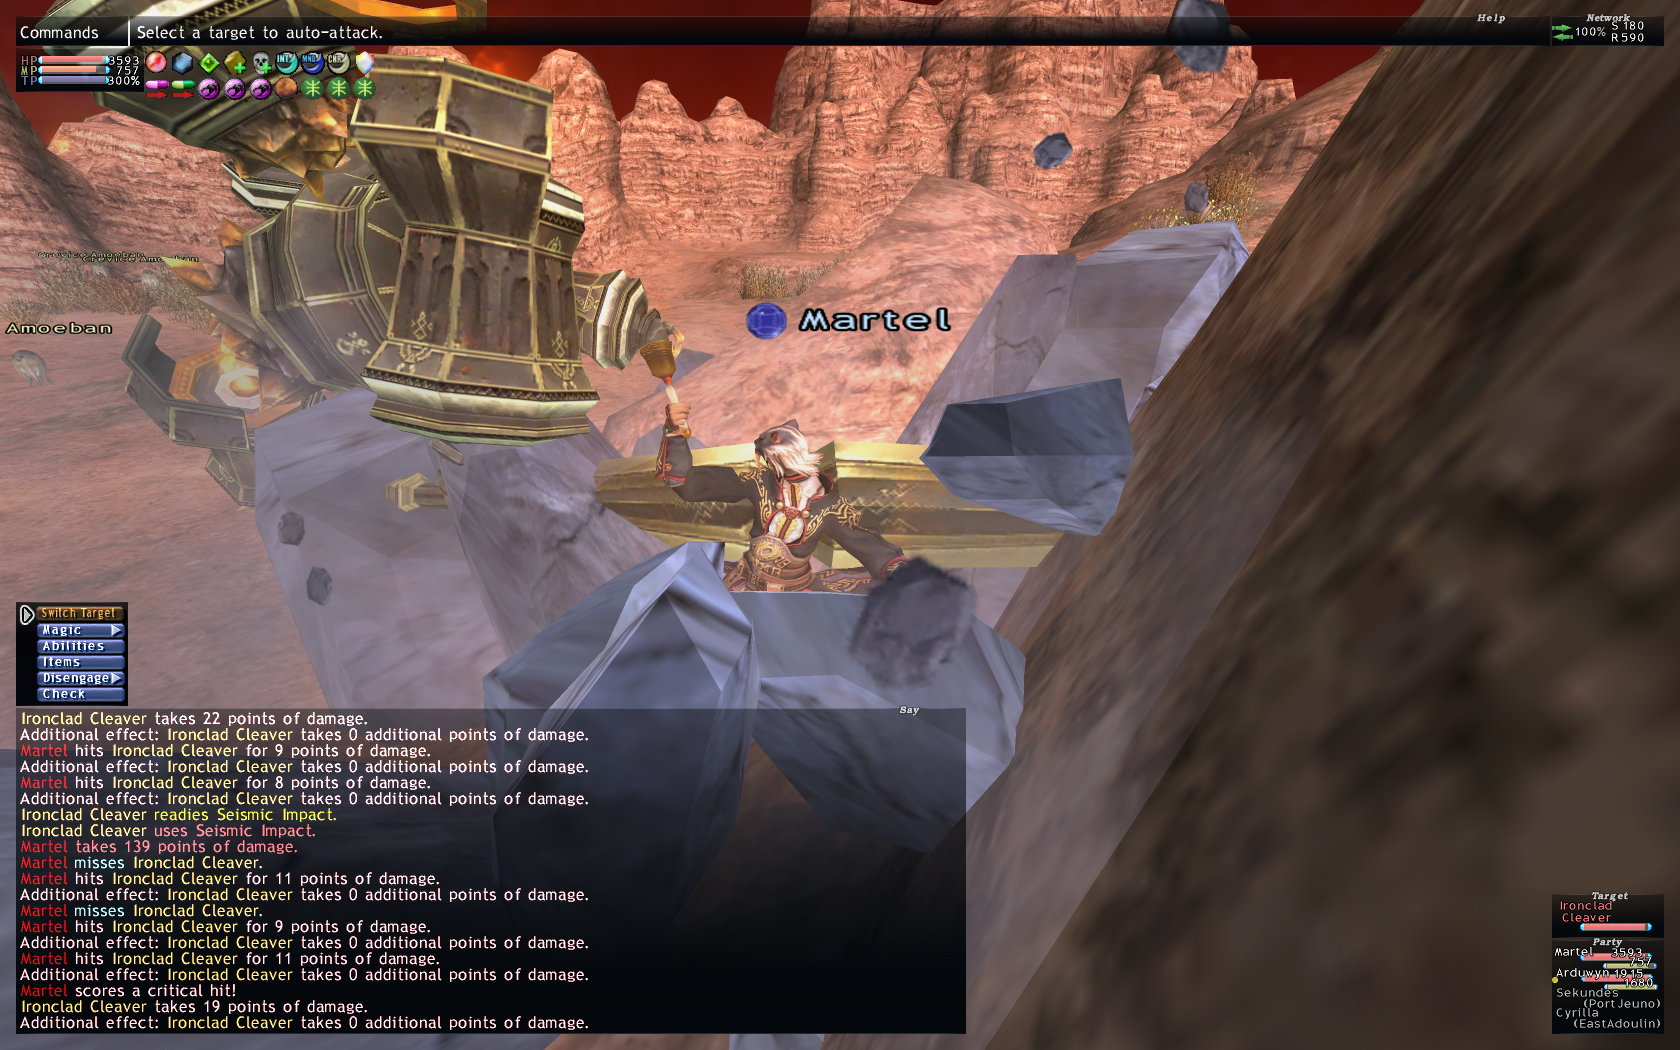 martel ffxi that people took over time them agro about were when getting doing because hours terrible dont casting they first literally told using with immediately listened past magic point spawn till sneak elementals sound know mages then across taking same supposedly following holy hell minutes despite zones heading understanding oilspowders just